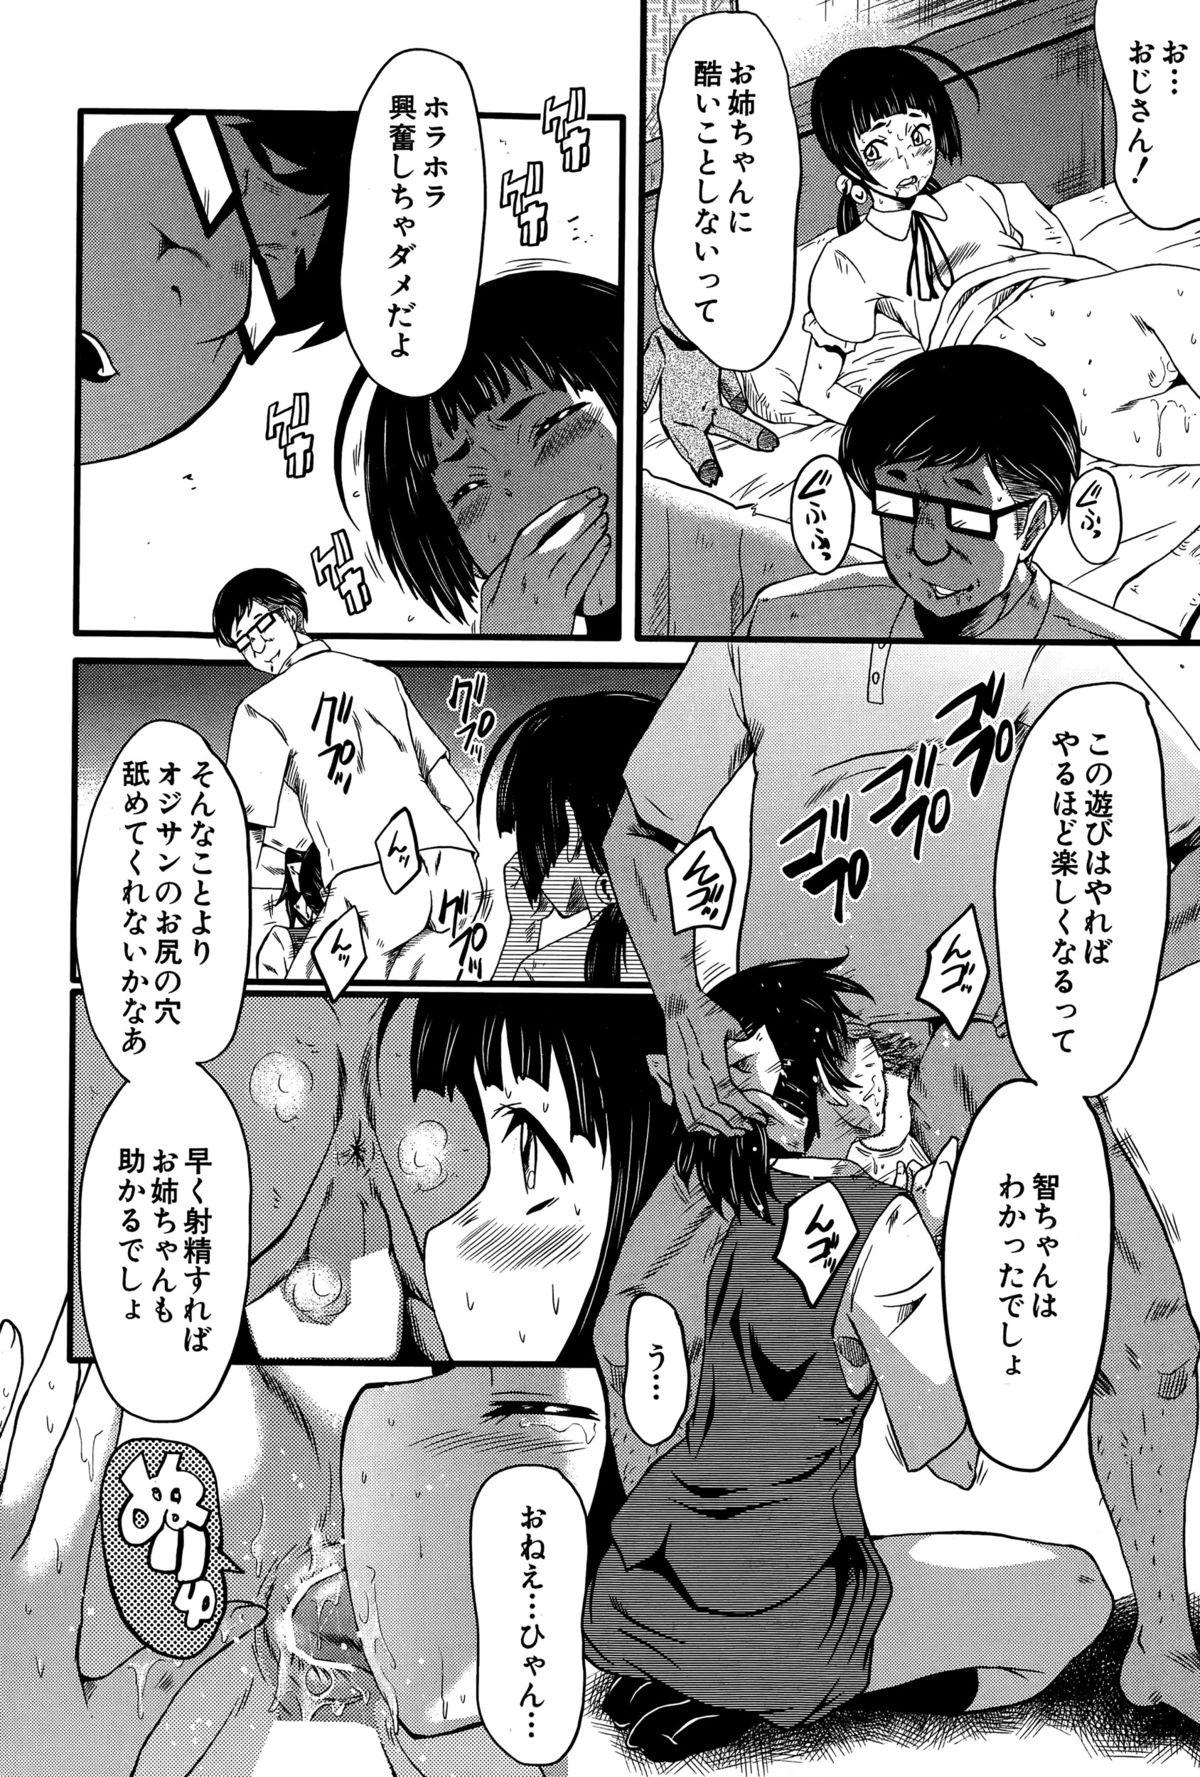 BUSTER COMIC 2015-07 113